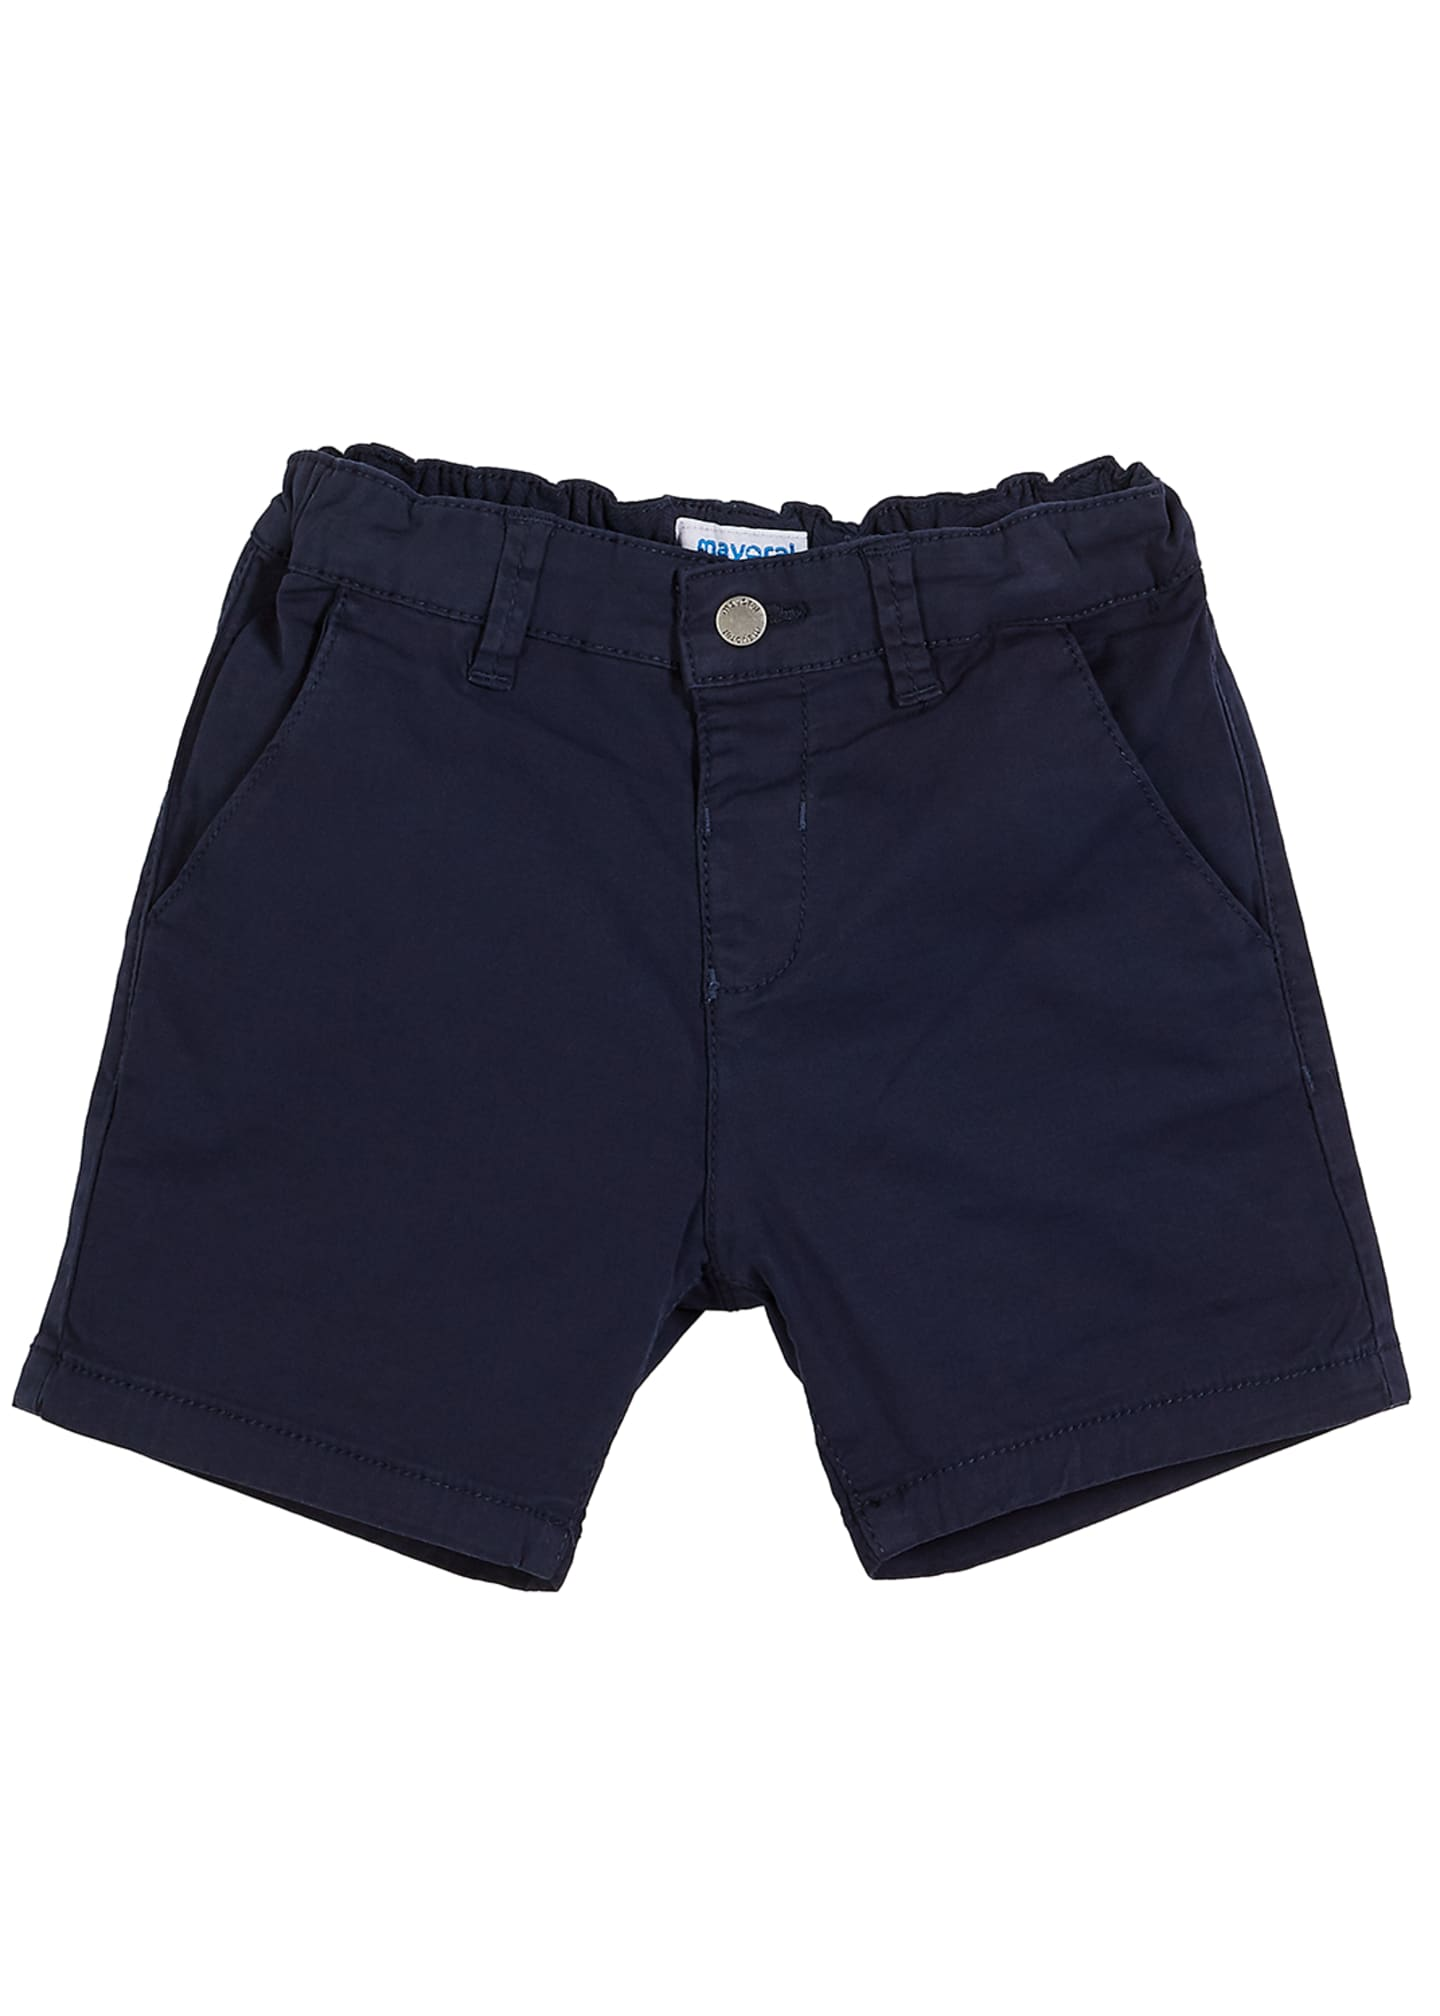 Mayoral Chino Twill Bermuda Shorts, Size 12-36 Months